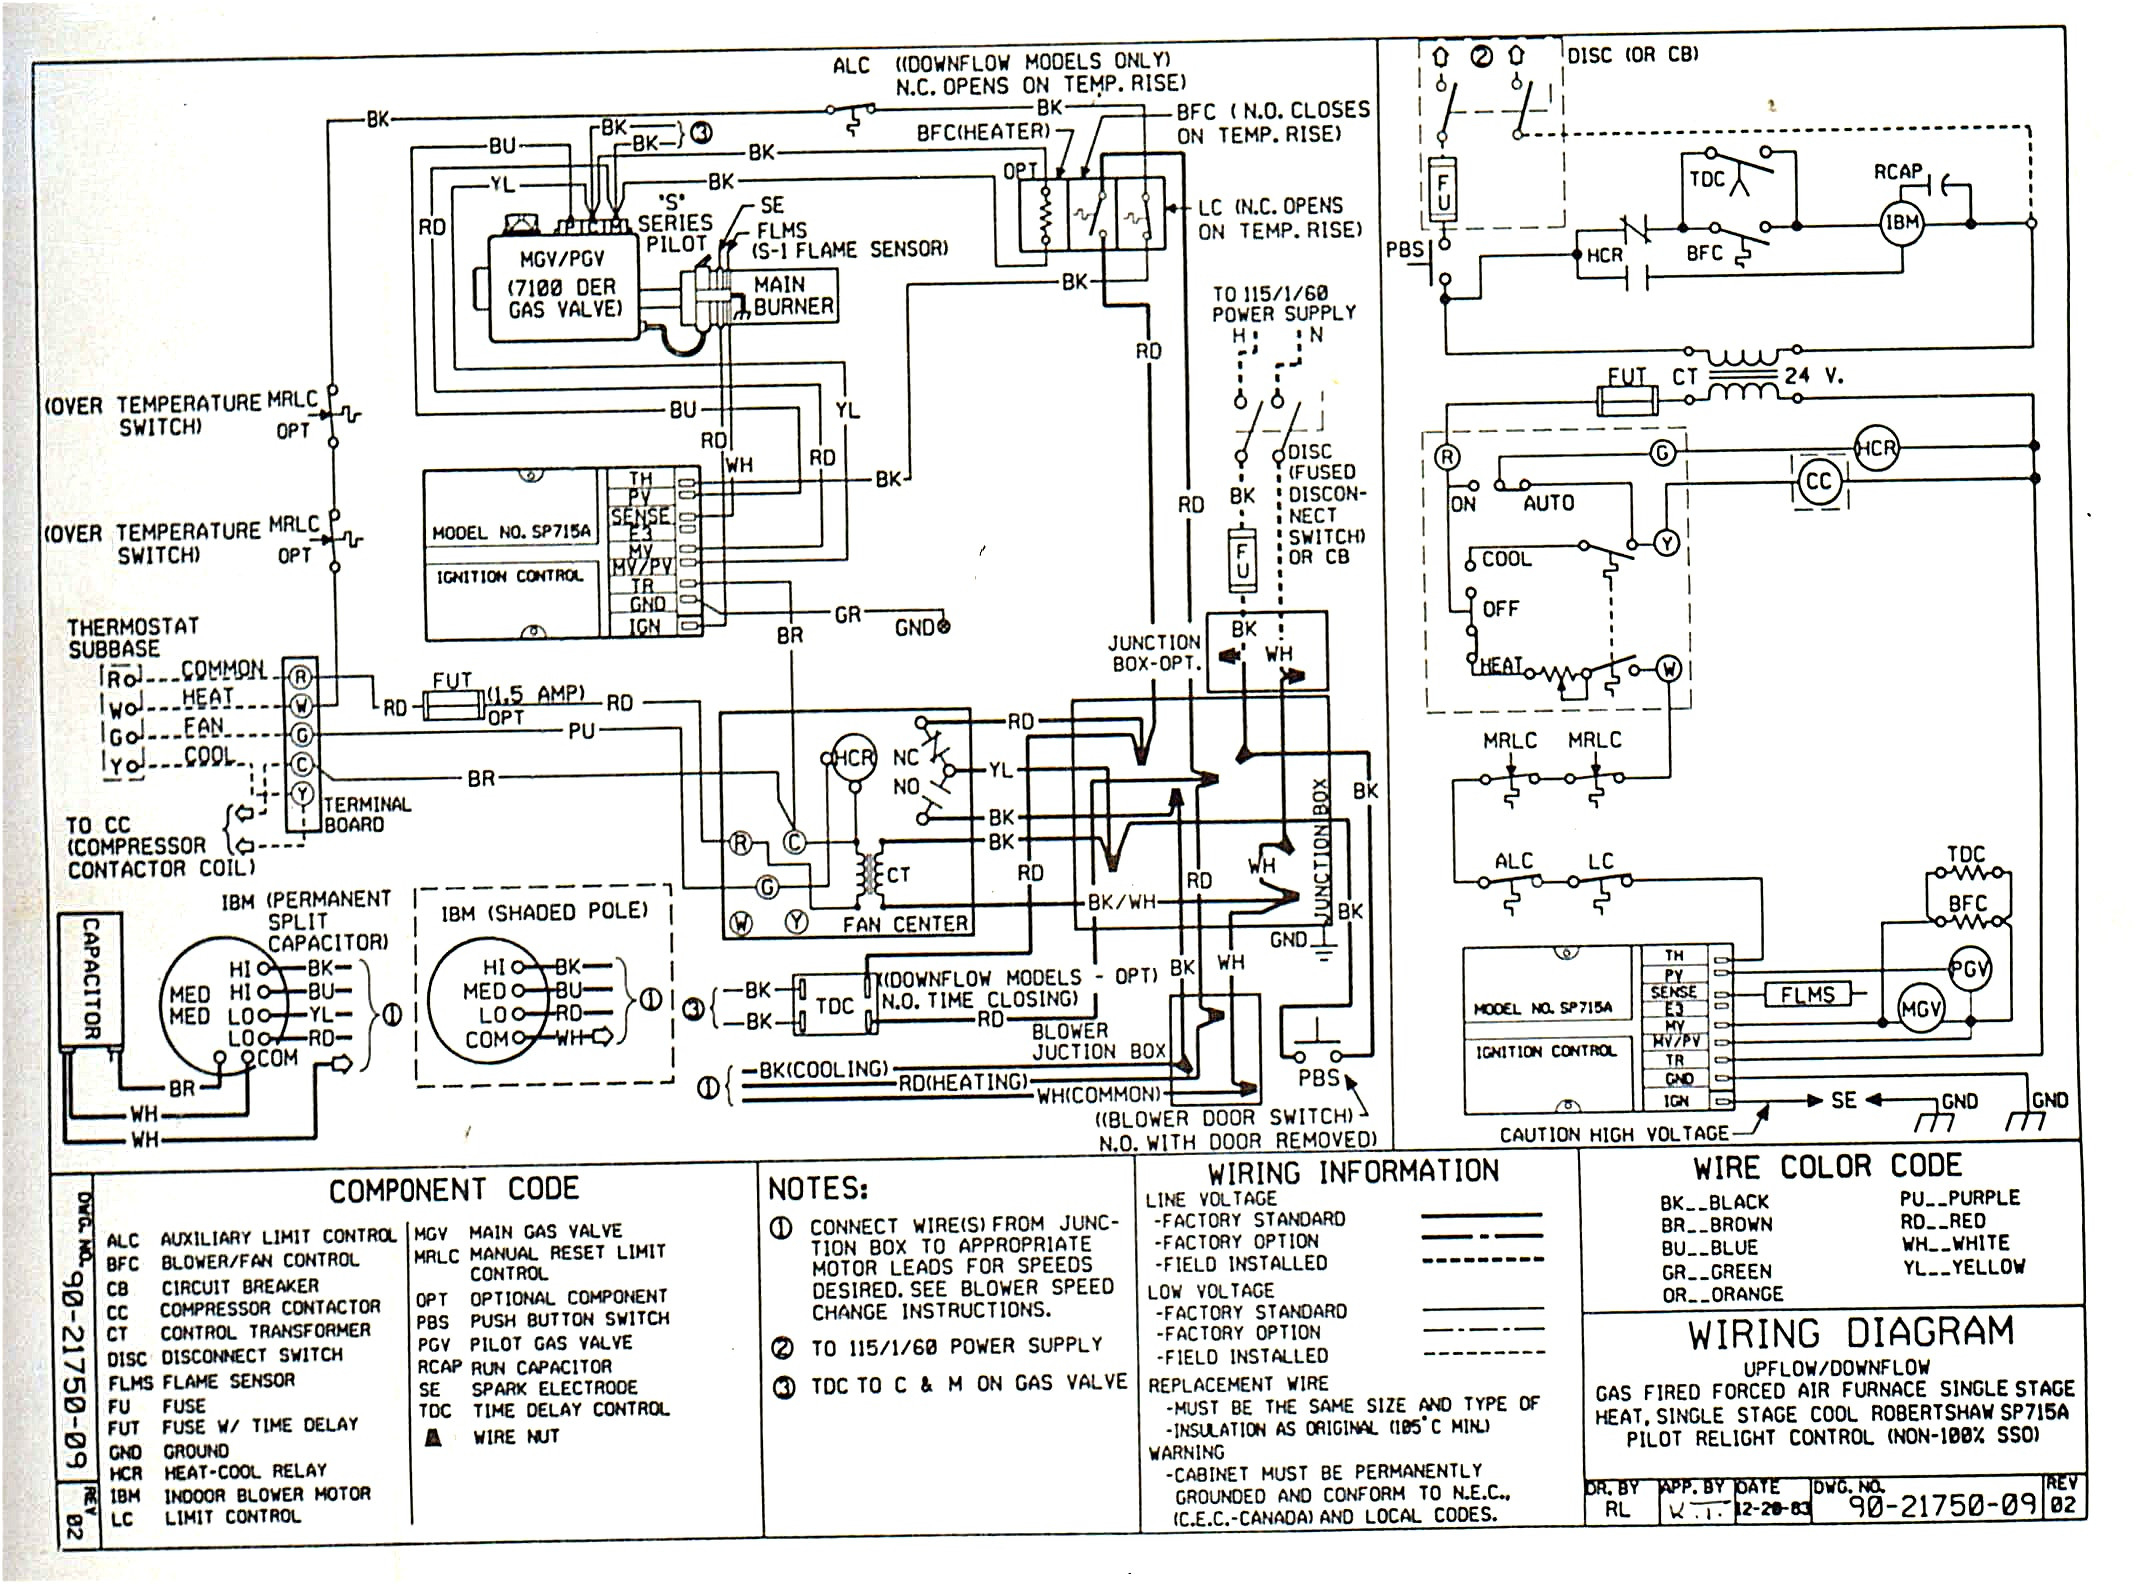 nordyne thermostat wiring diagram Download-york gas valve wiring diagram example electrical wiring diagram u2022 rh cranejapan co York Gas Furnace 4-h